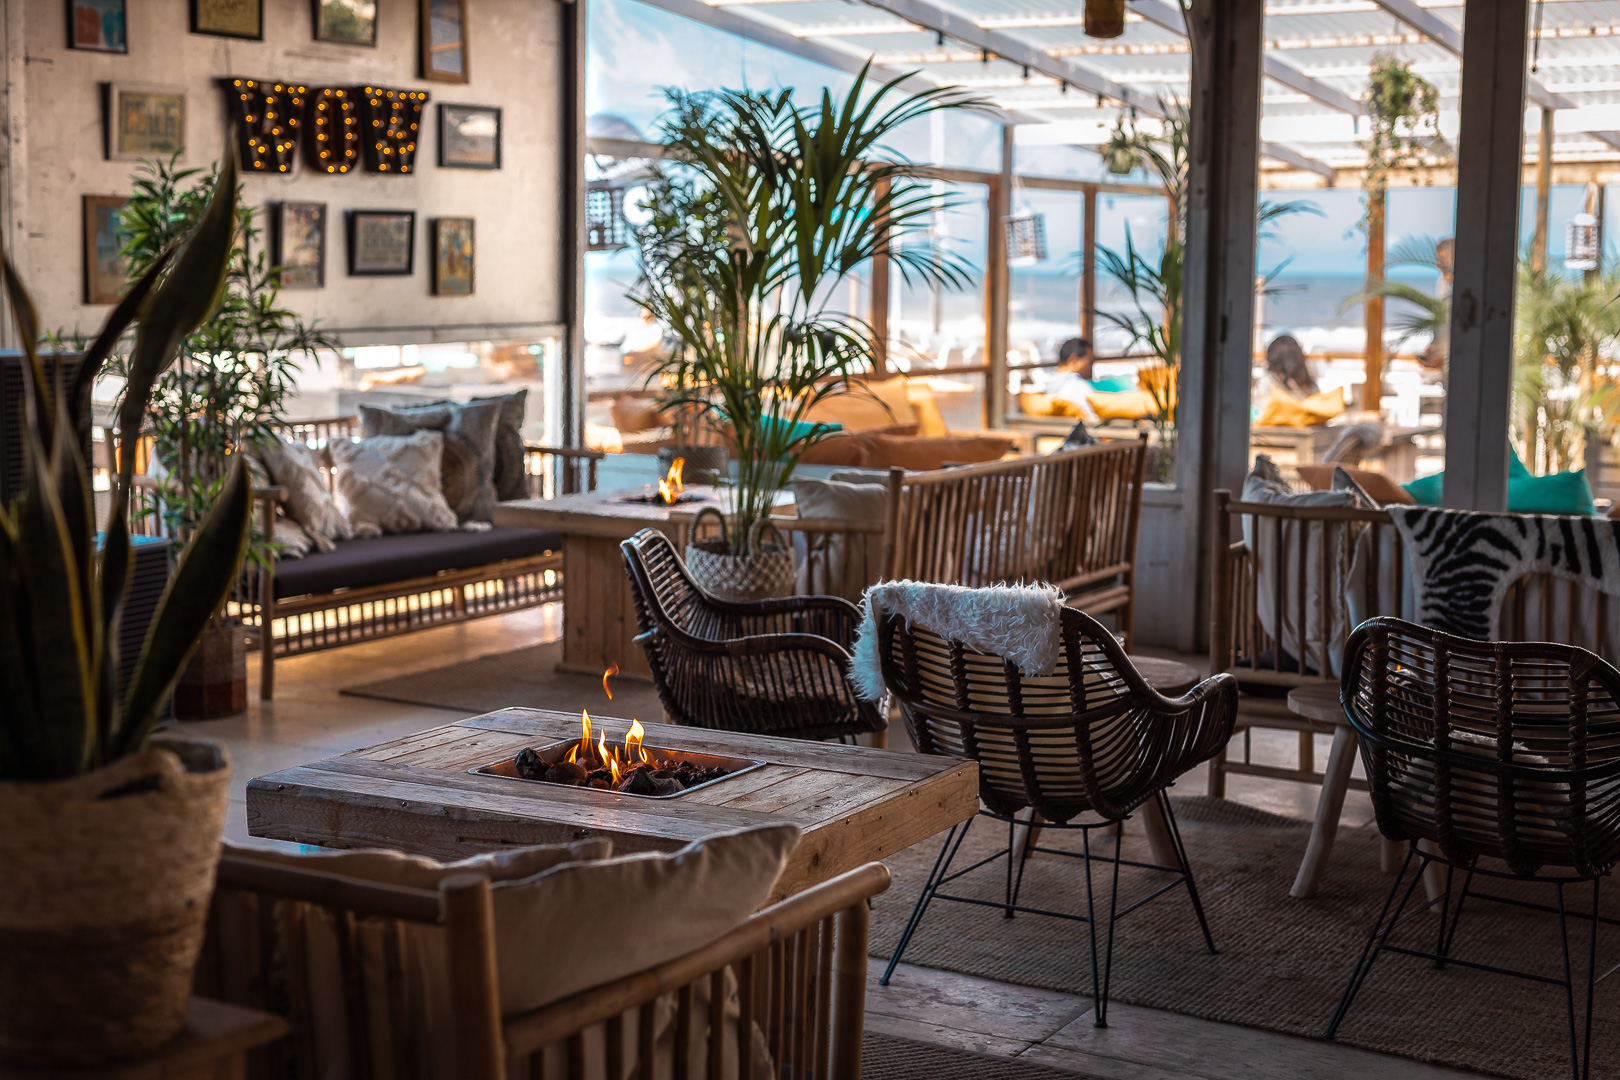 Restaurant photographer - Kamile Kave - Interior of the Beachclub.jpg